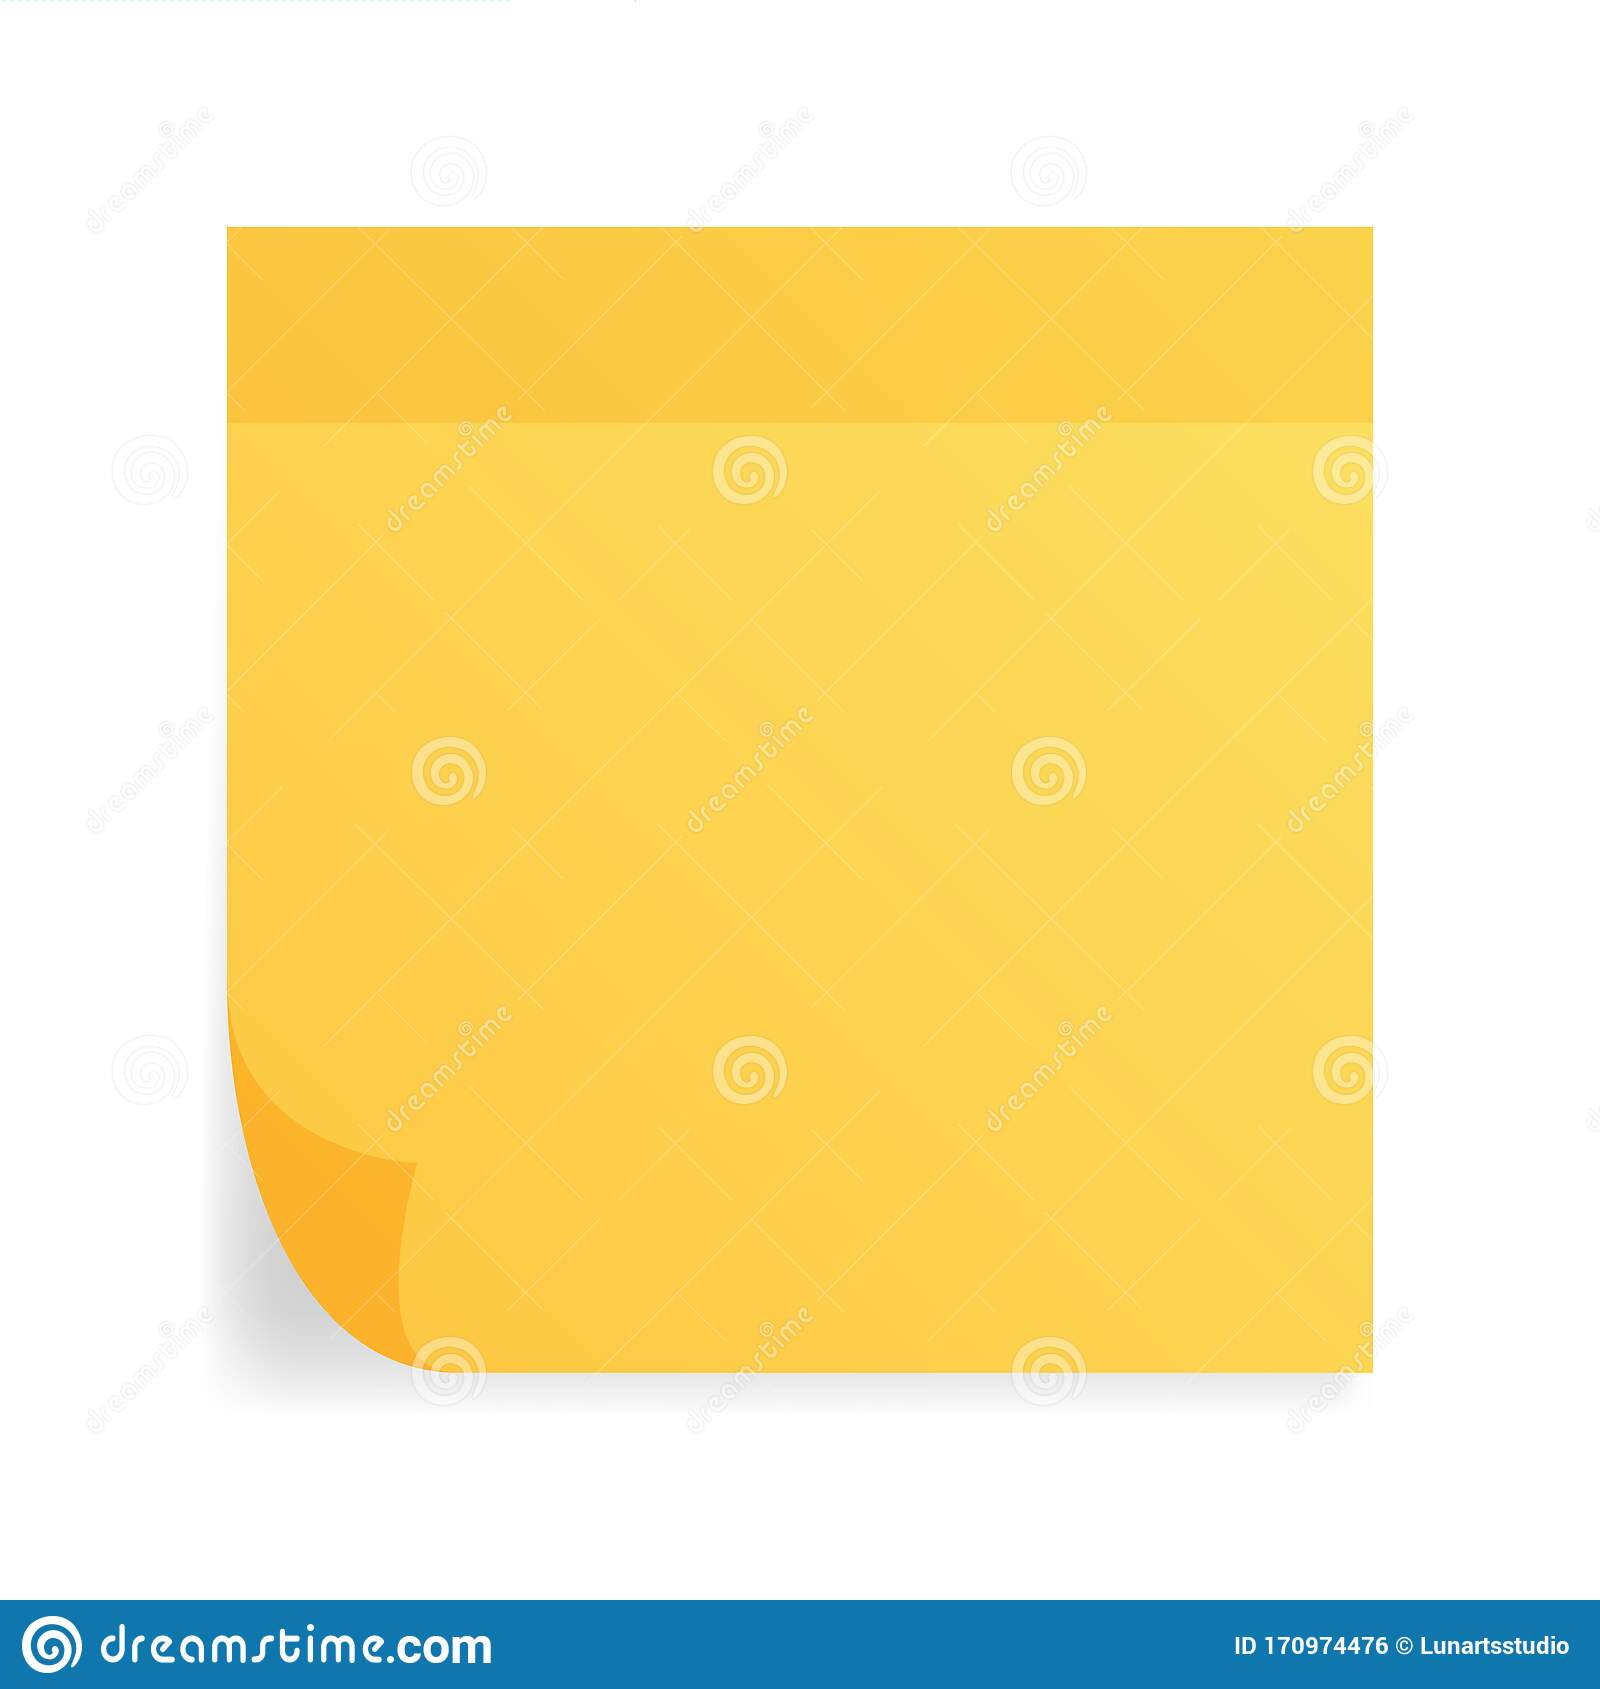 Blank Square Adhesive Crumpled Notes Sticker Mock Up With Curved Corner  Mockup Empty Sticky